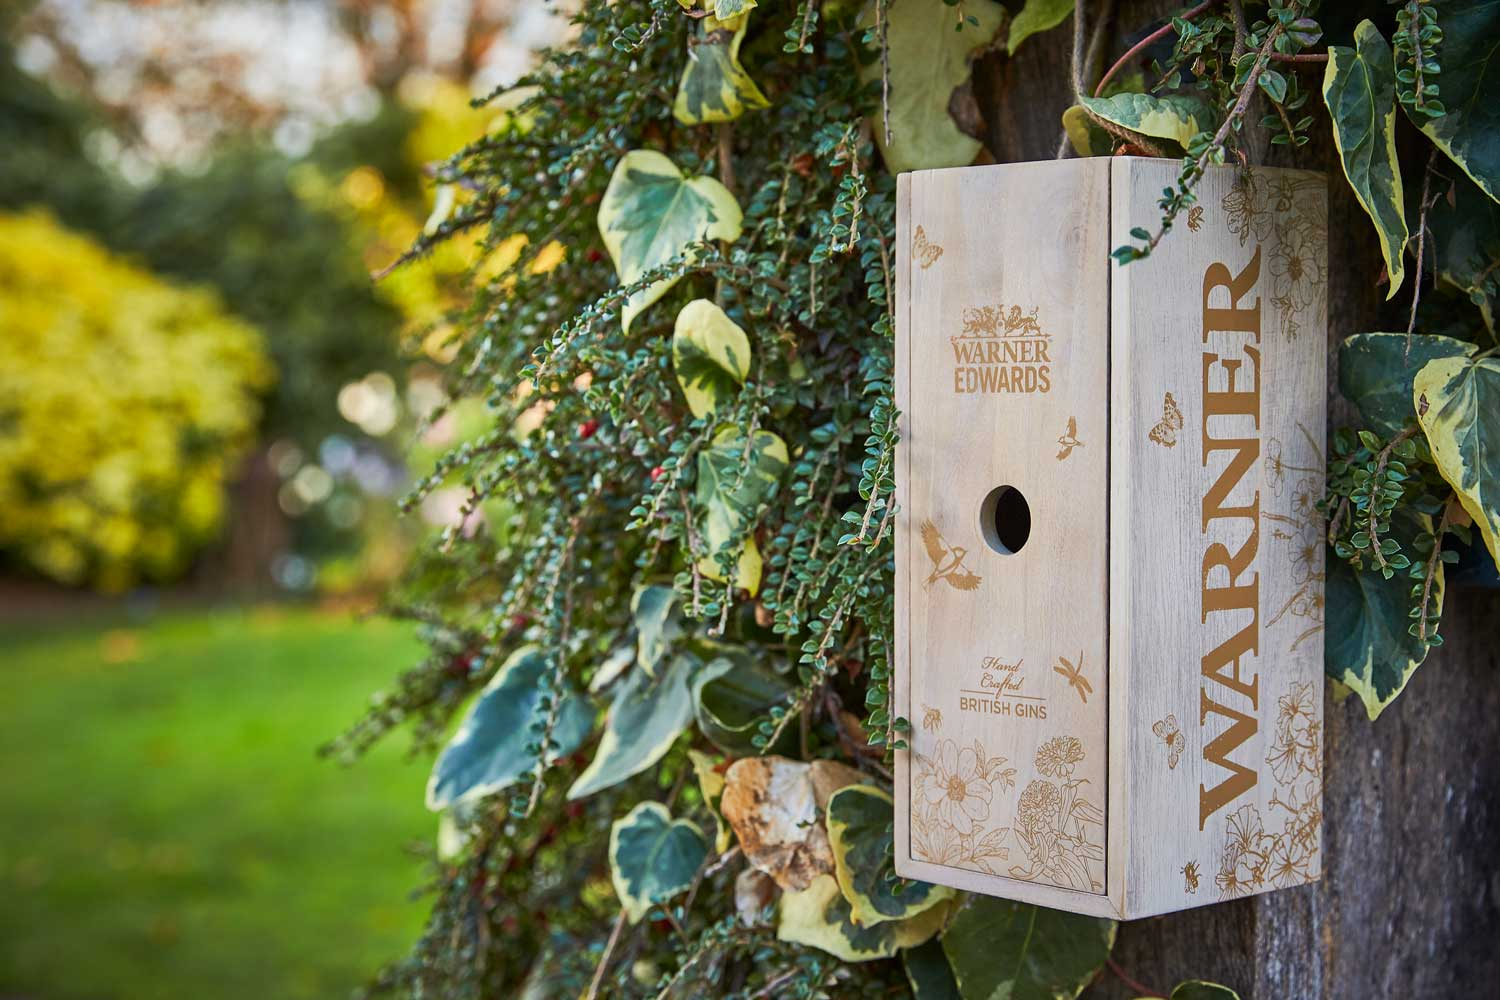 Progress Packaging Wooden Bird Box Insect Hotel Drinks Gin Spirits Liquor Fsc Approved Recycled Biodegradable Reusable Upcycling Responsibly Sourced Eco Friendly Environmentally Friendly 5